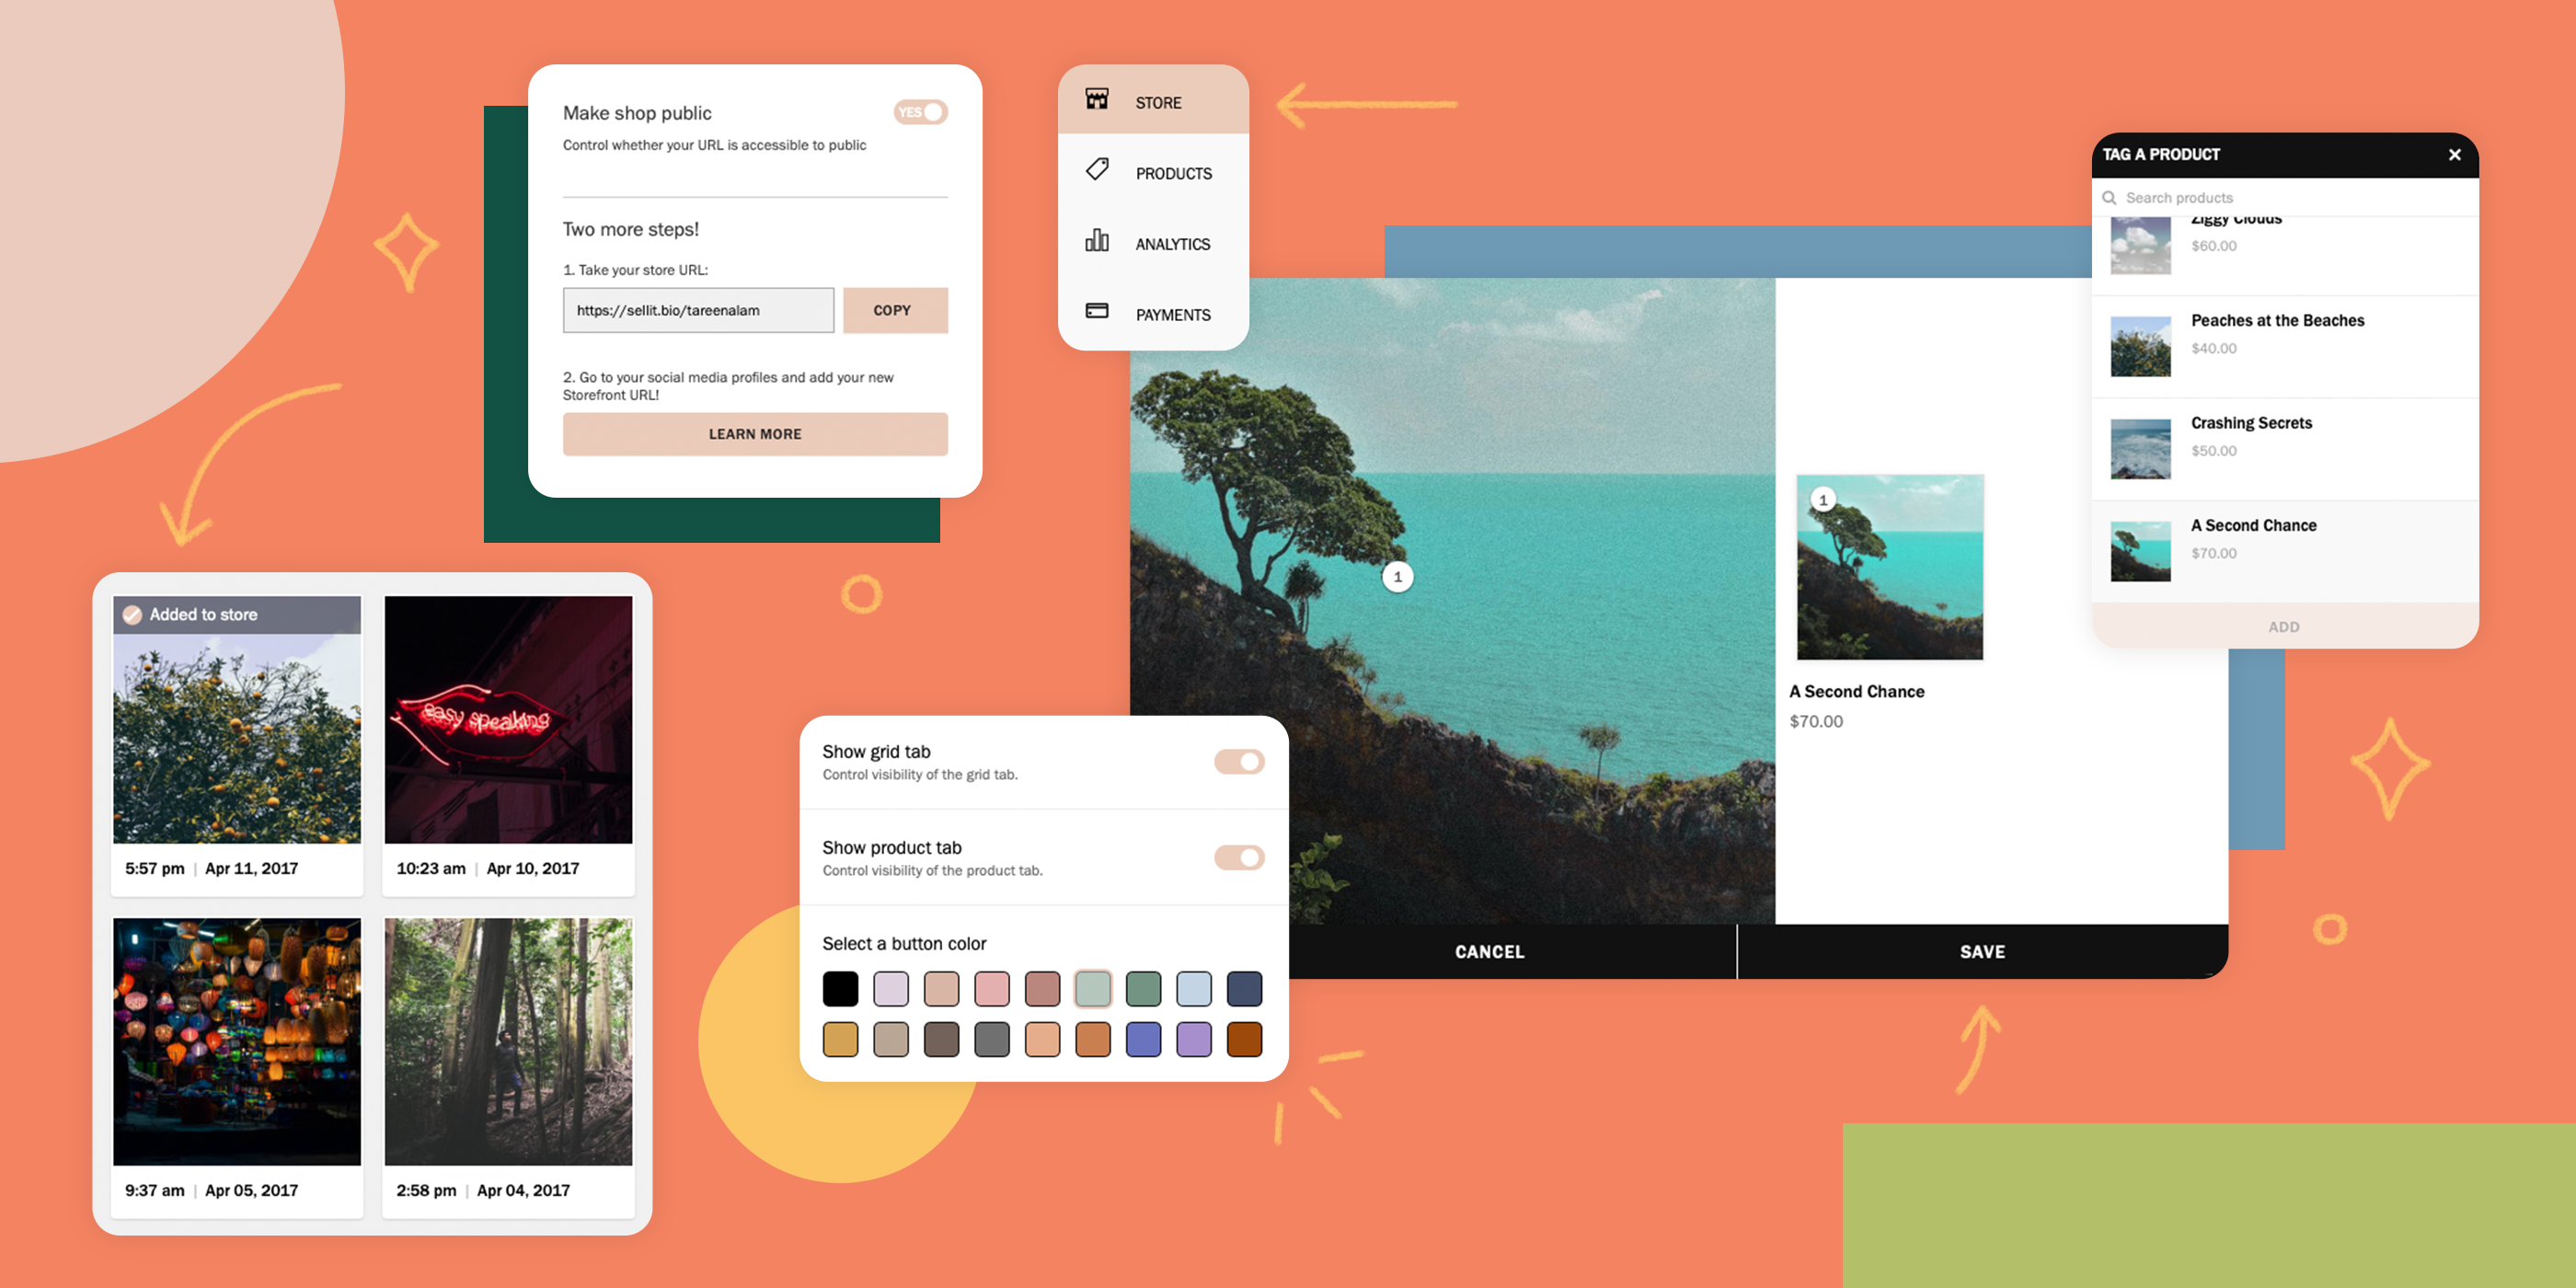 Introducing PLANOLY's sellit: Simplifying the Digital Storefront